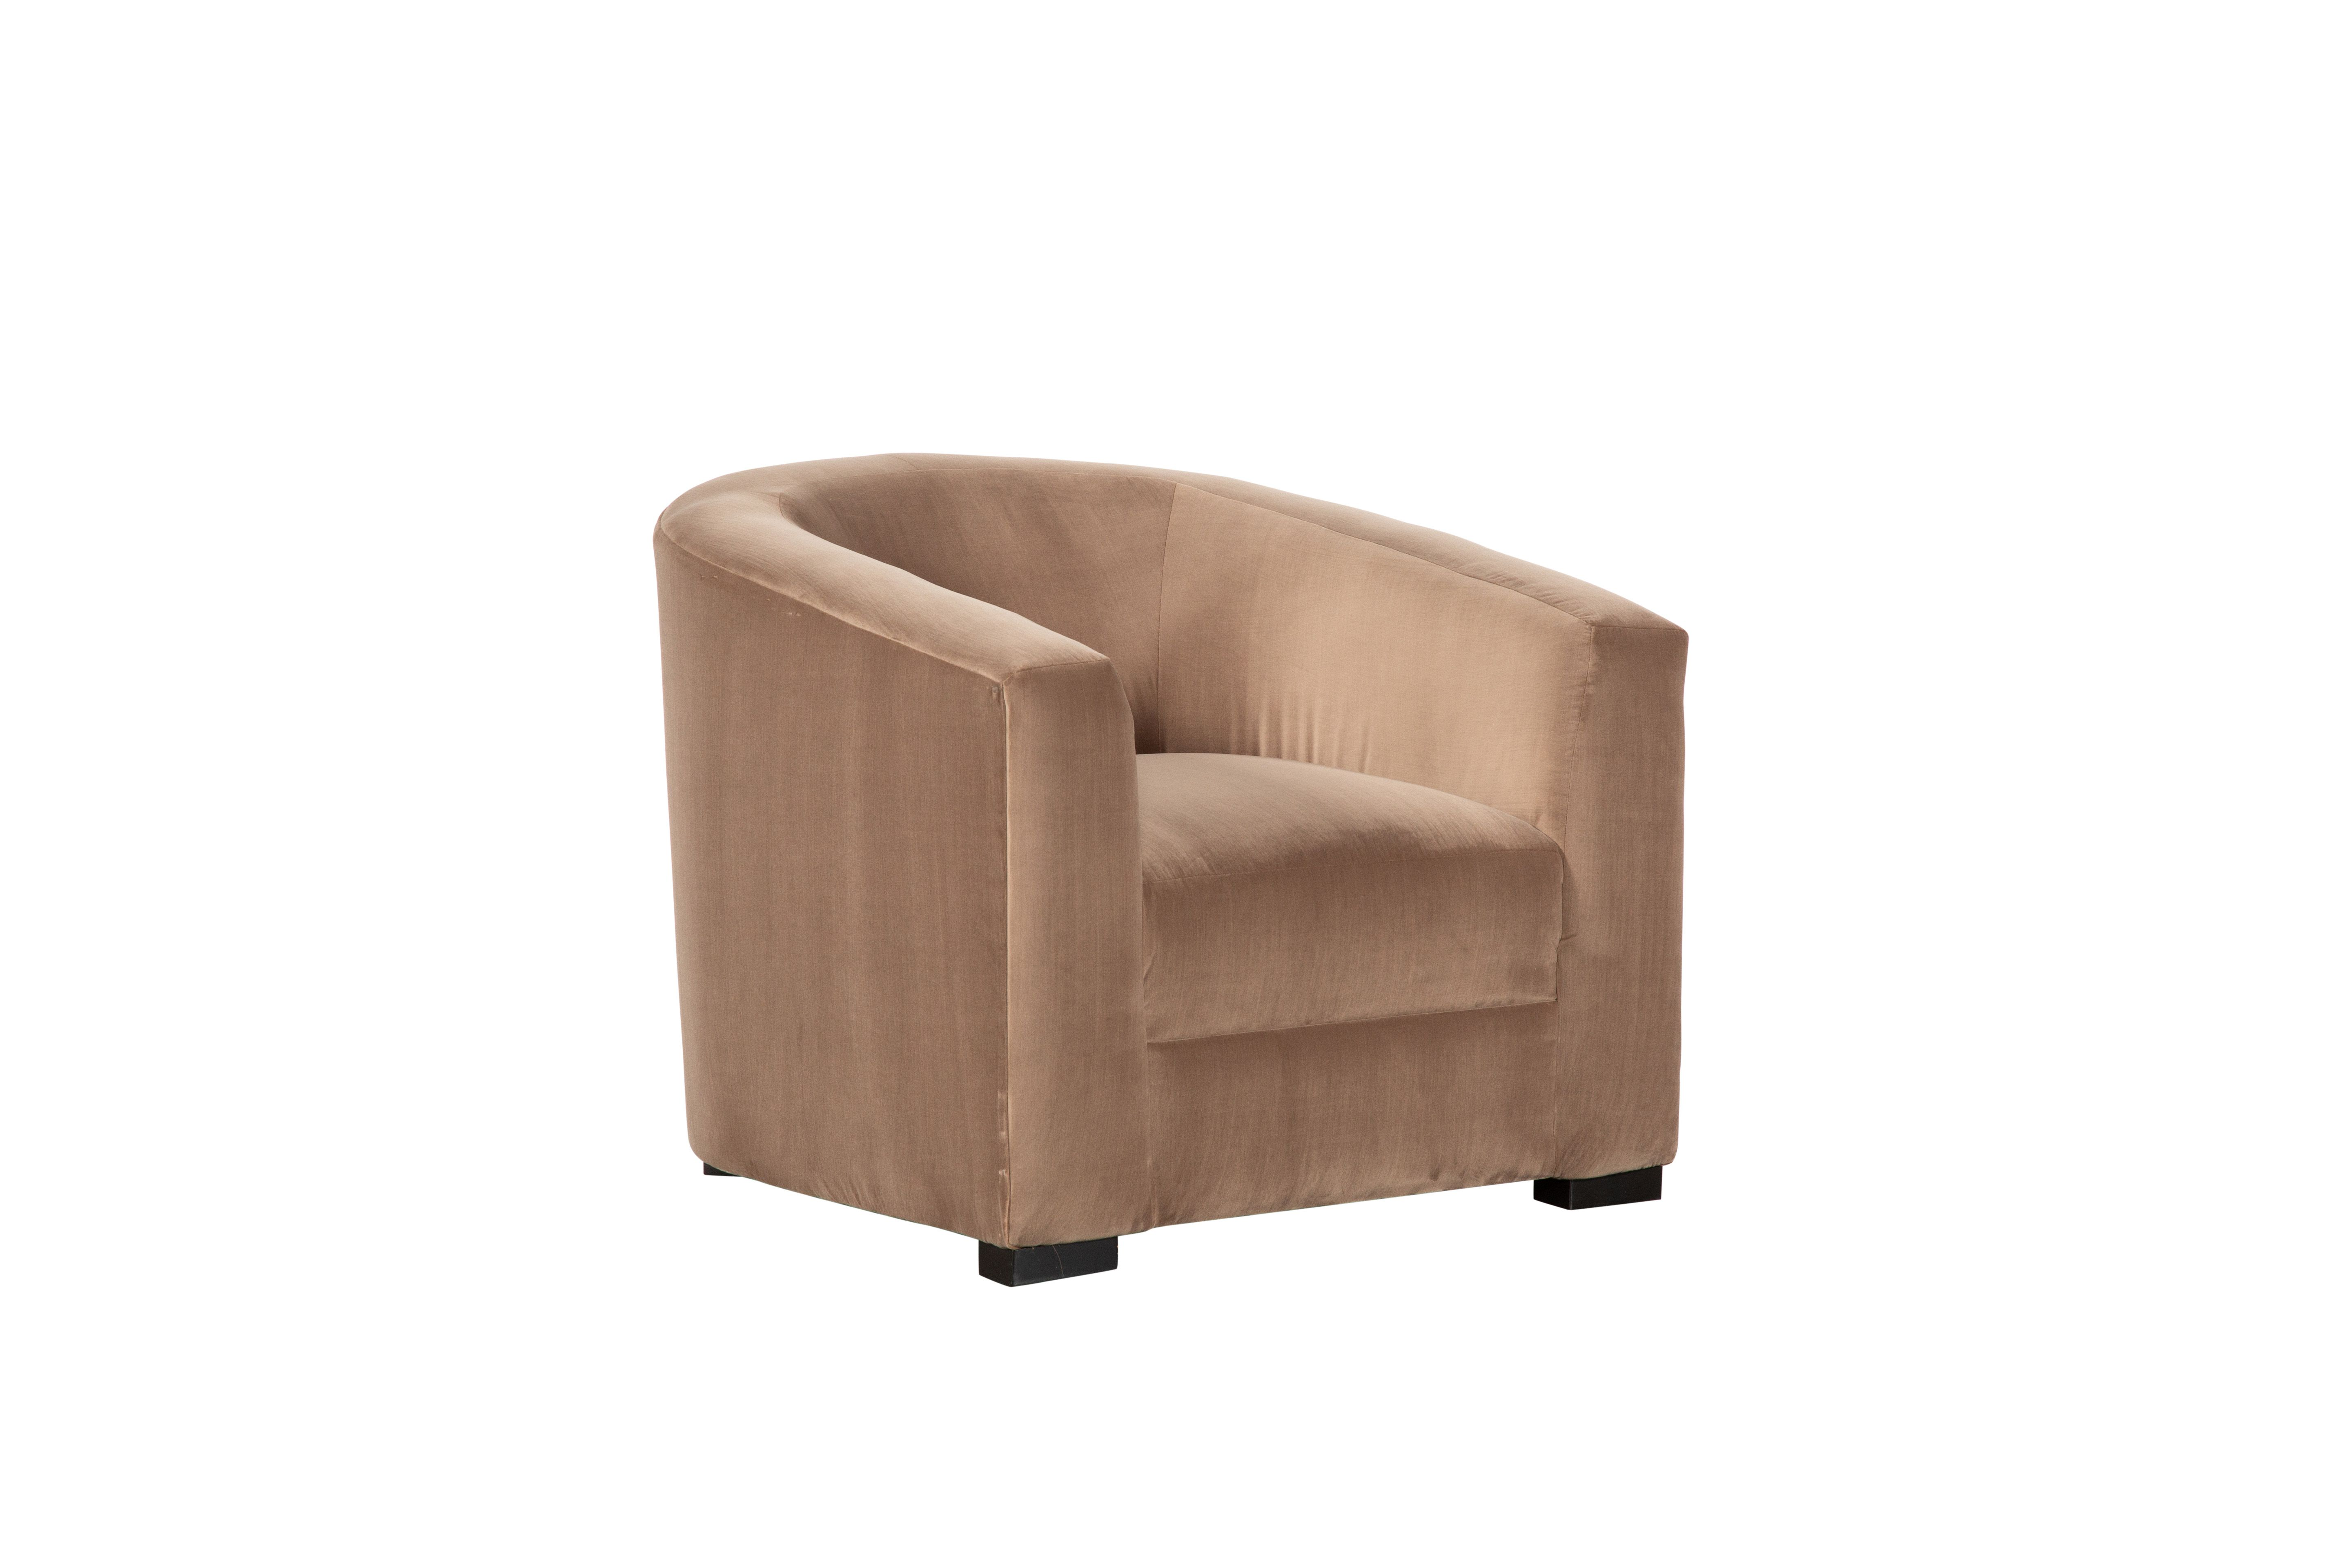 Nate Berkus and Jeremiah Brent for Living Spaces Emile Coffee Lounge Accent Chair